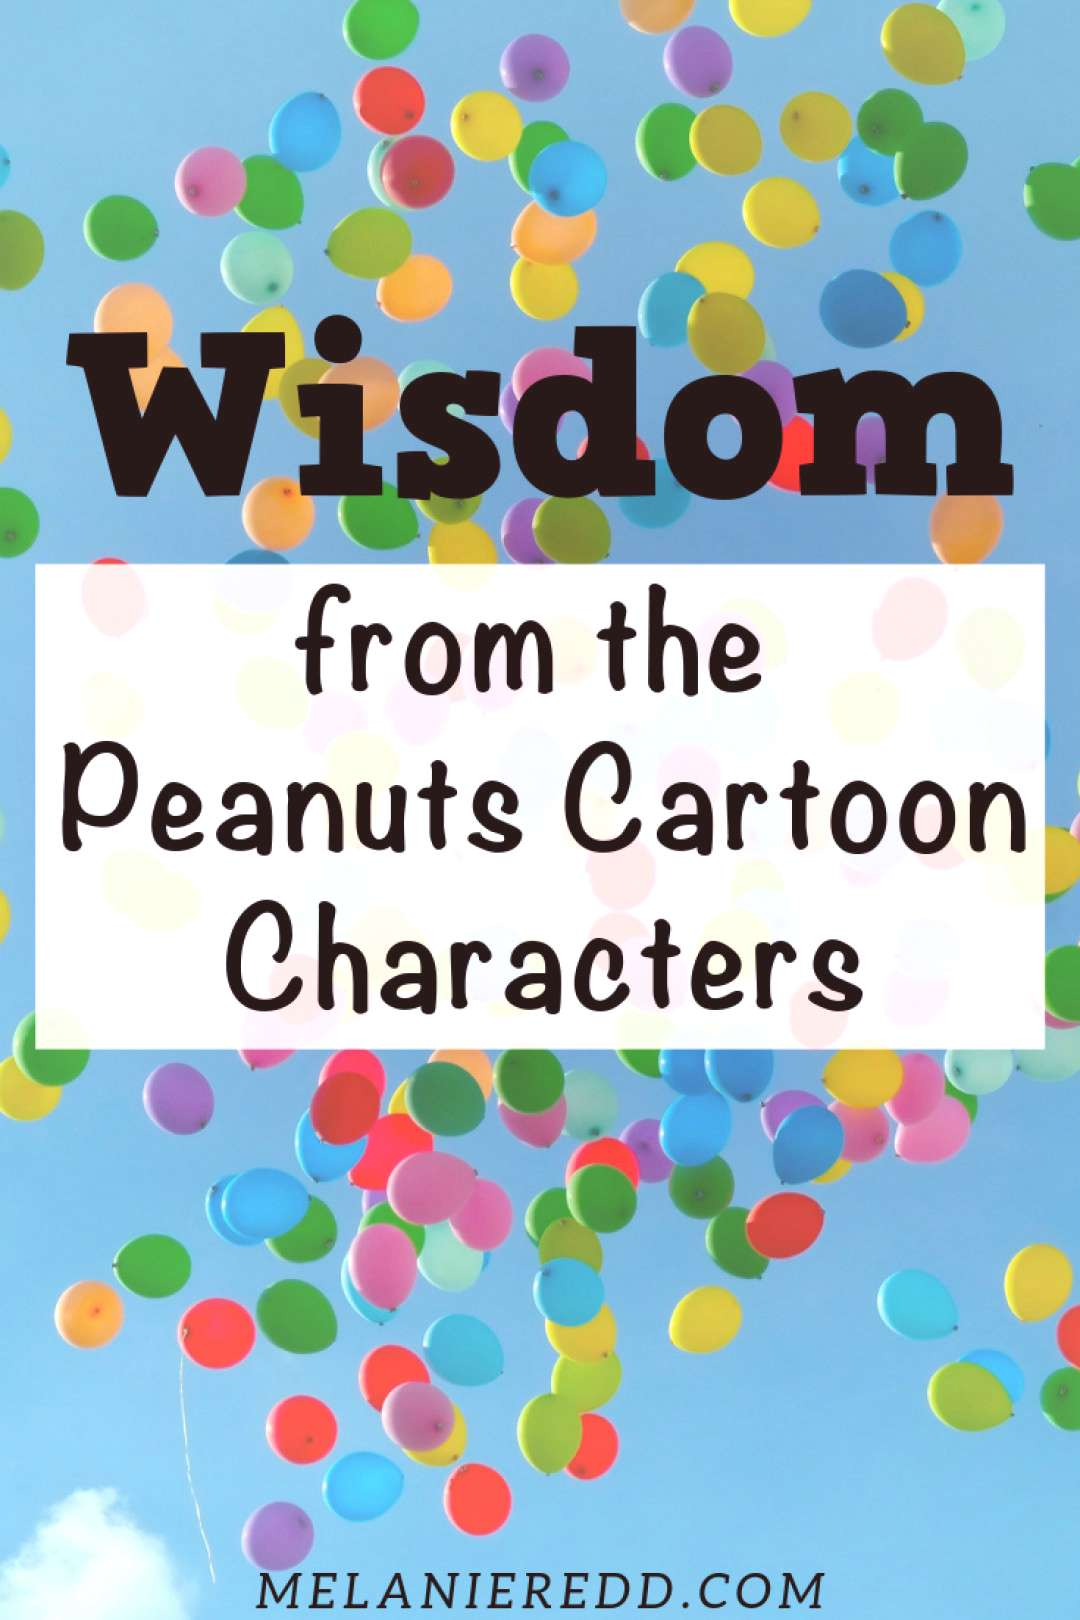 Wisdom from the Peanuts Cartoon Characters - Melanie Redd We grew up reading the cartoons, but did